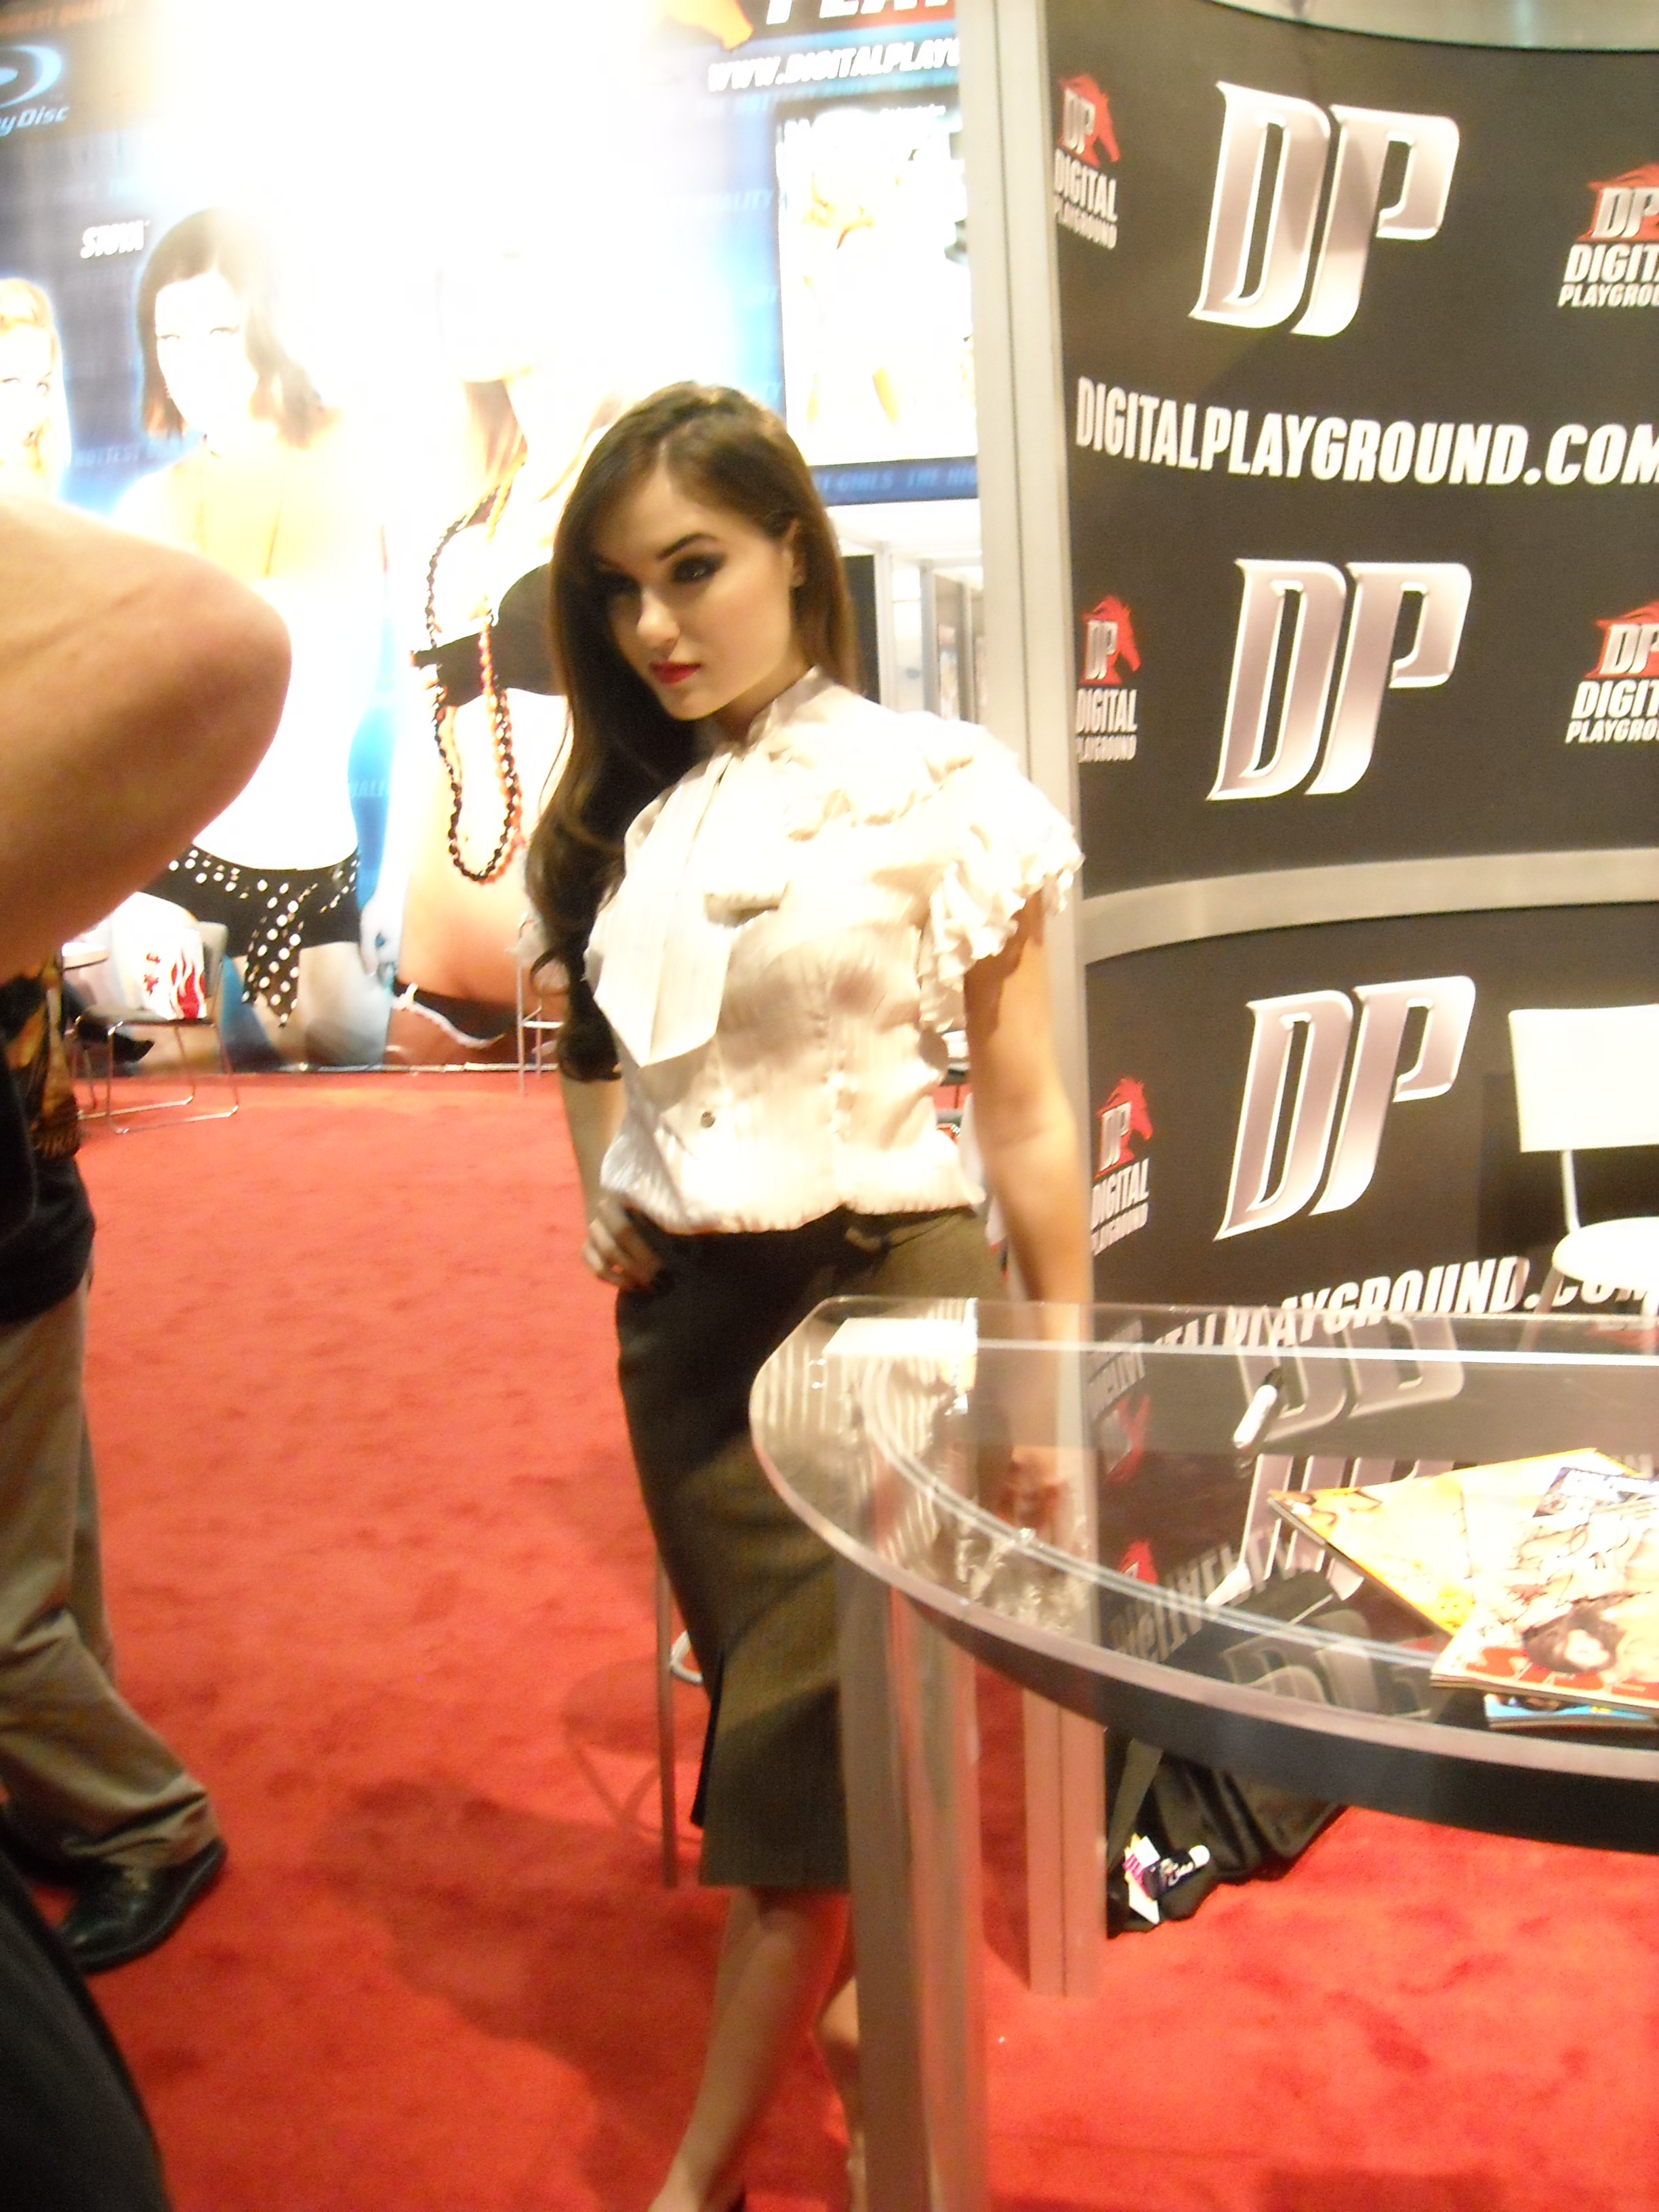 Adult Entertainment Expo Videos 2009